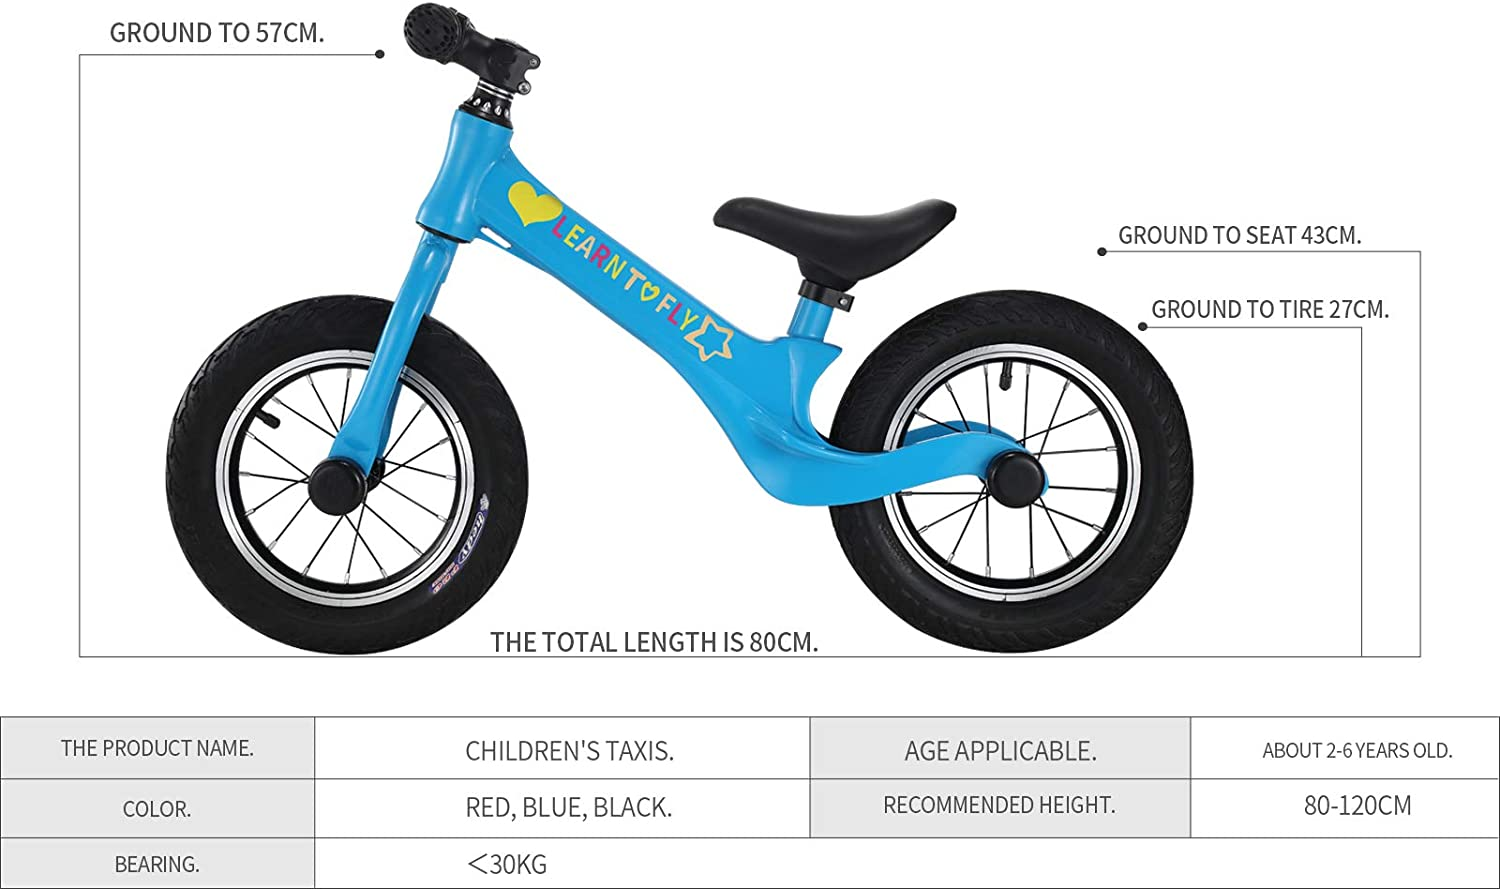 Scooter.12 inch Magnesium Alloy Frame.2 3 4 5 6 Years Old Children use. Childrens Balance Bike Training Bike